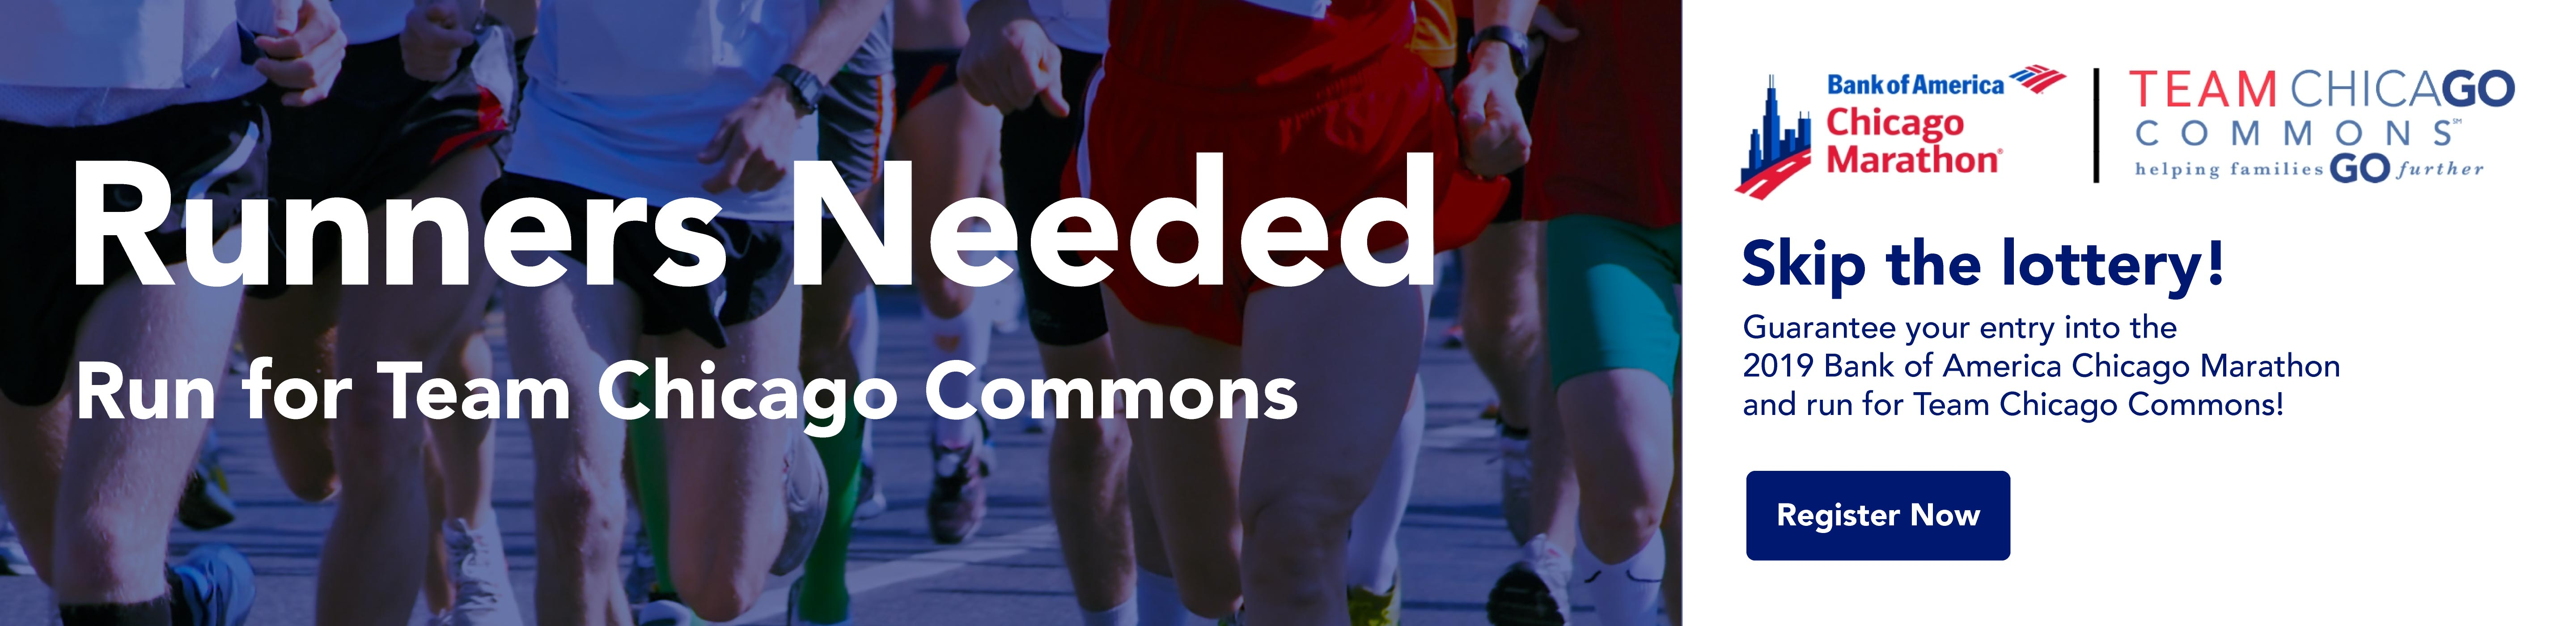 Bank of America Chicago Marathon - Run for Team Chicago Commons